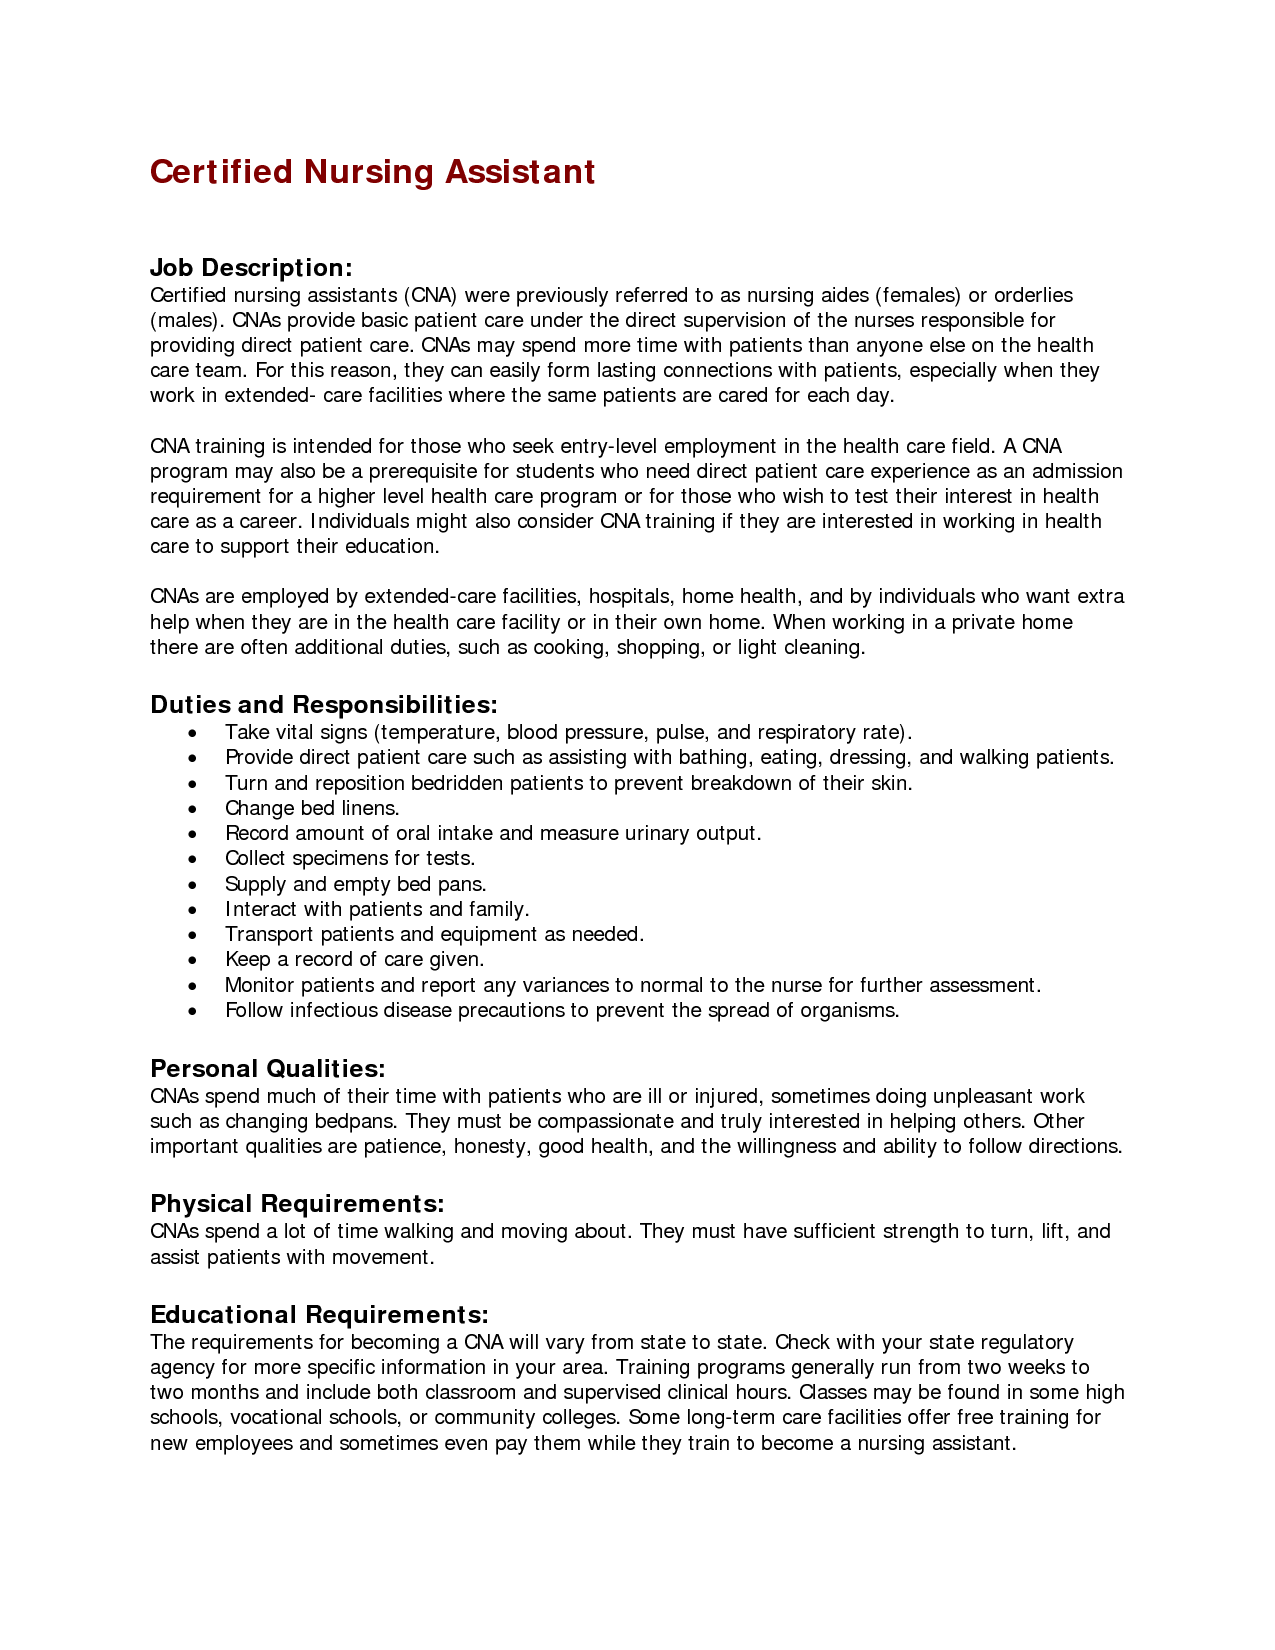 responsibilities nursing assistant resume job description cna duties and responsibilities - Sample Certified Nursing Assistant Resume